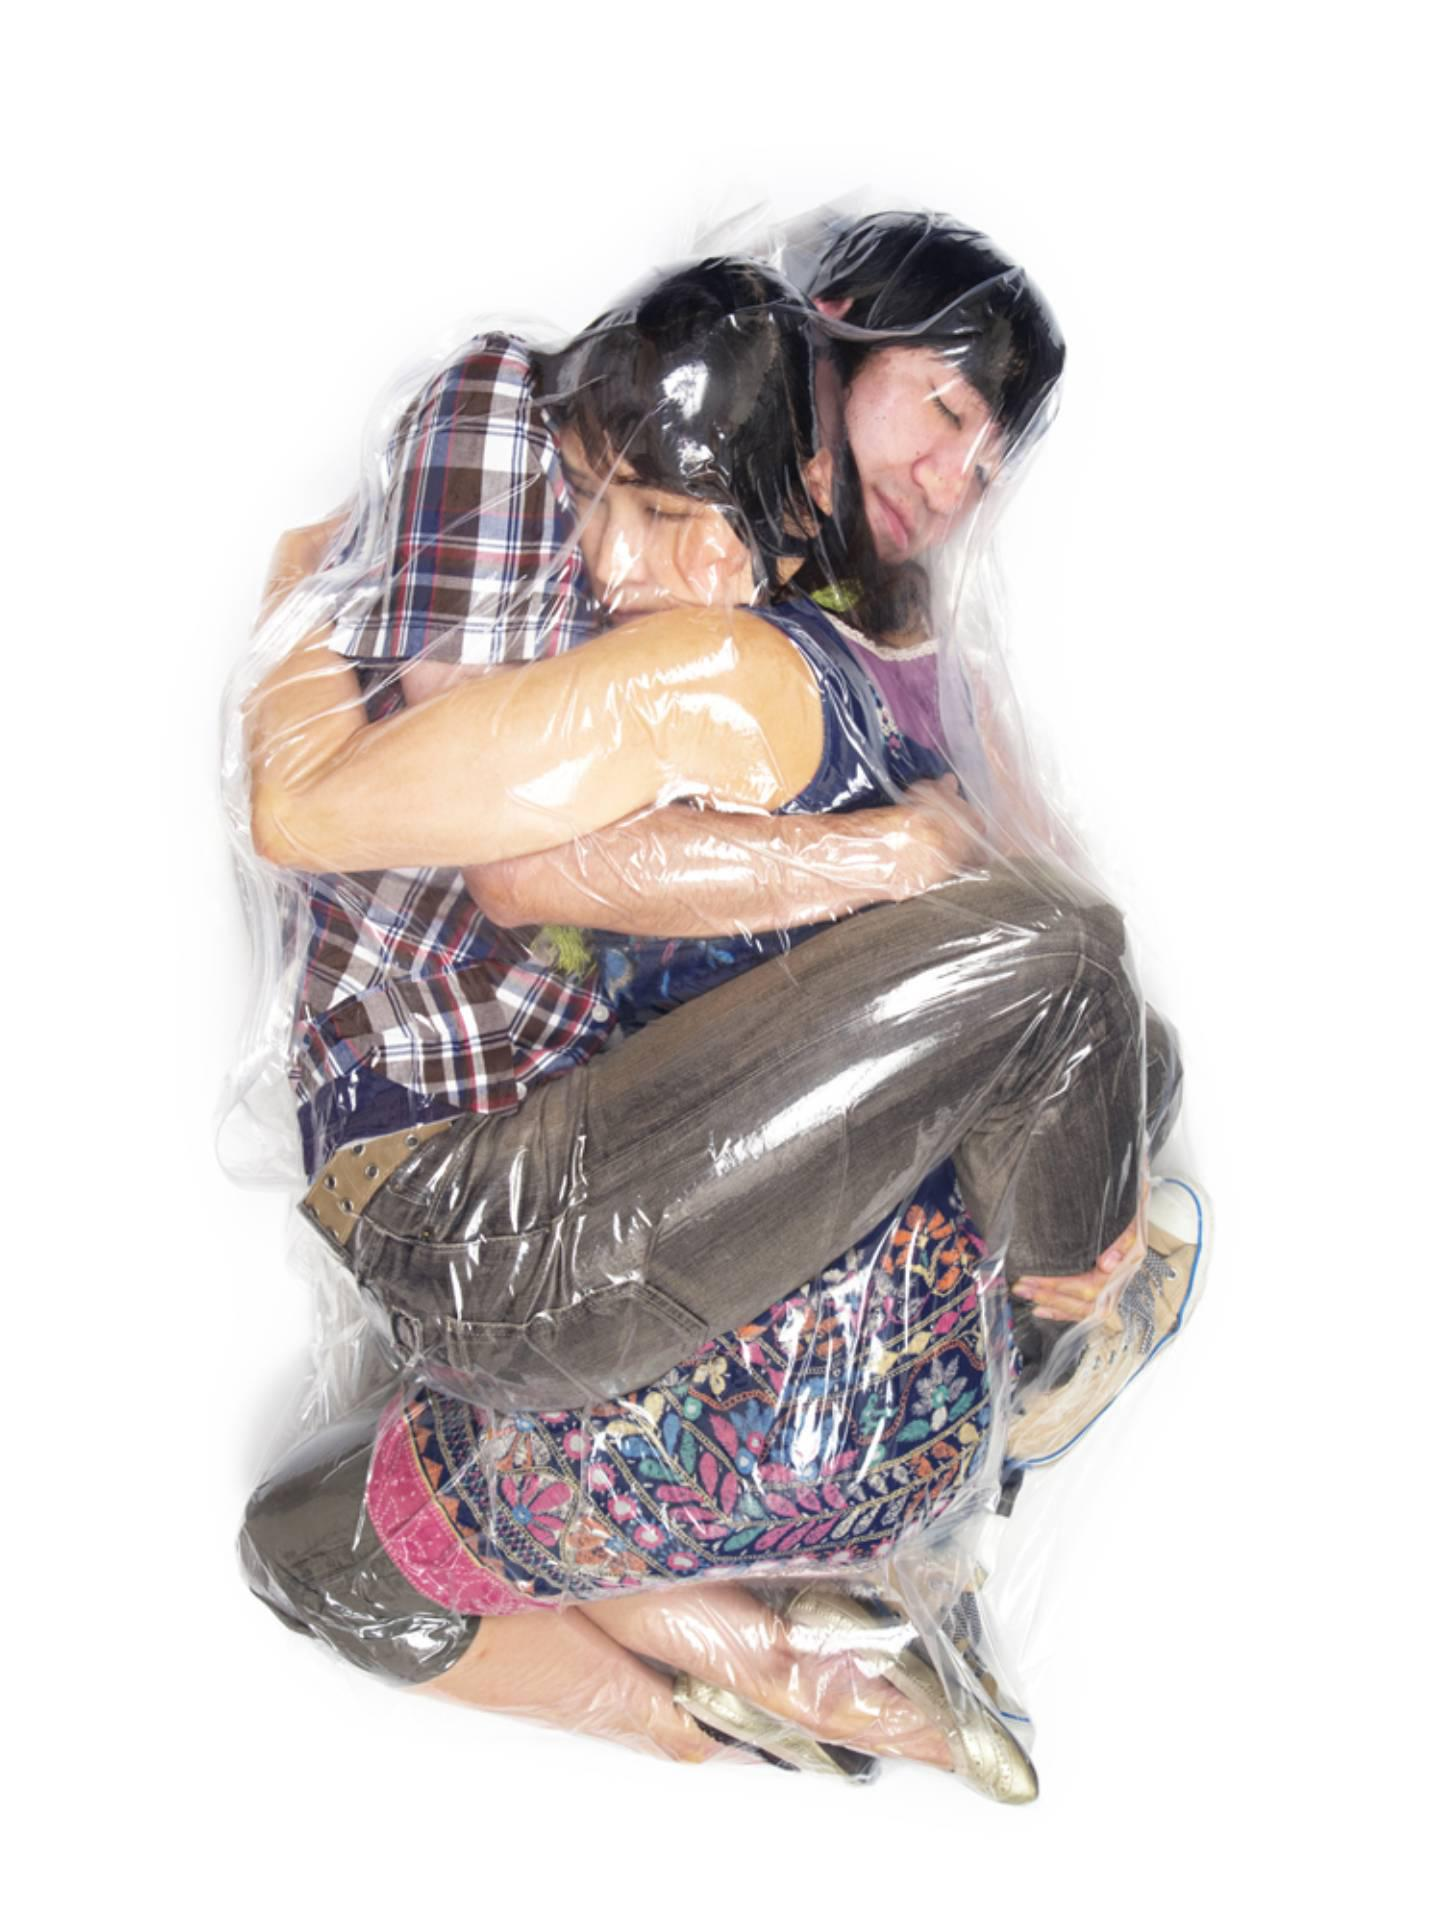 Photo of a couple in vacuumed plastic bag